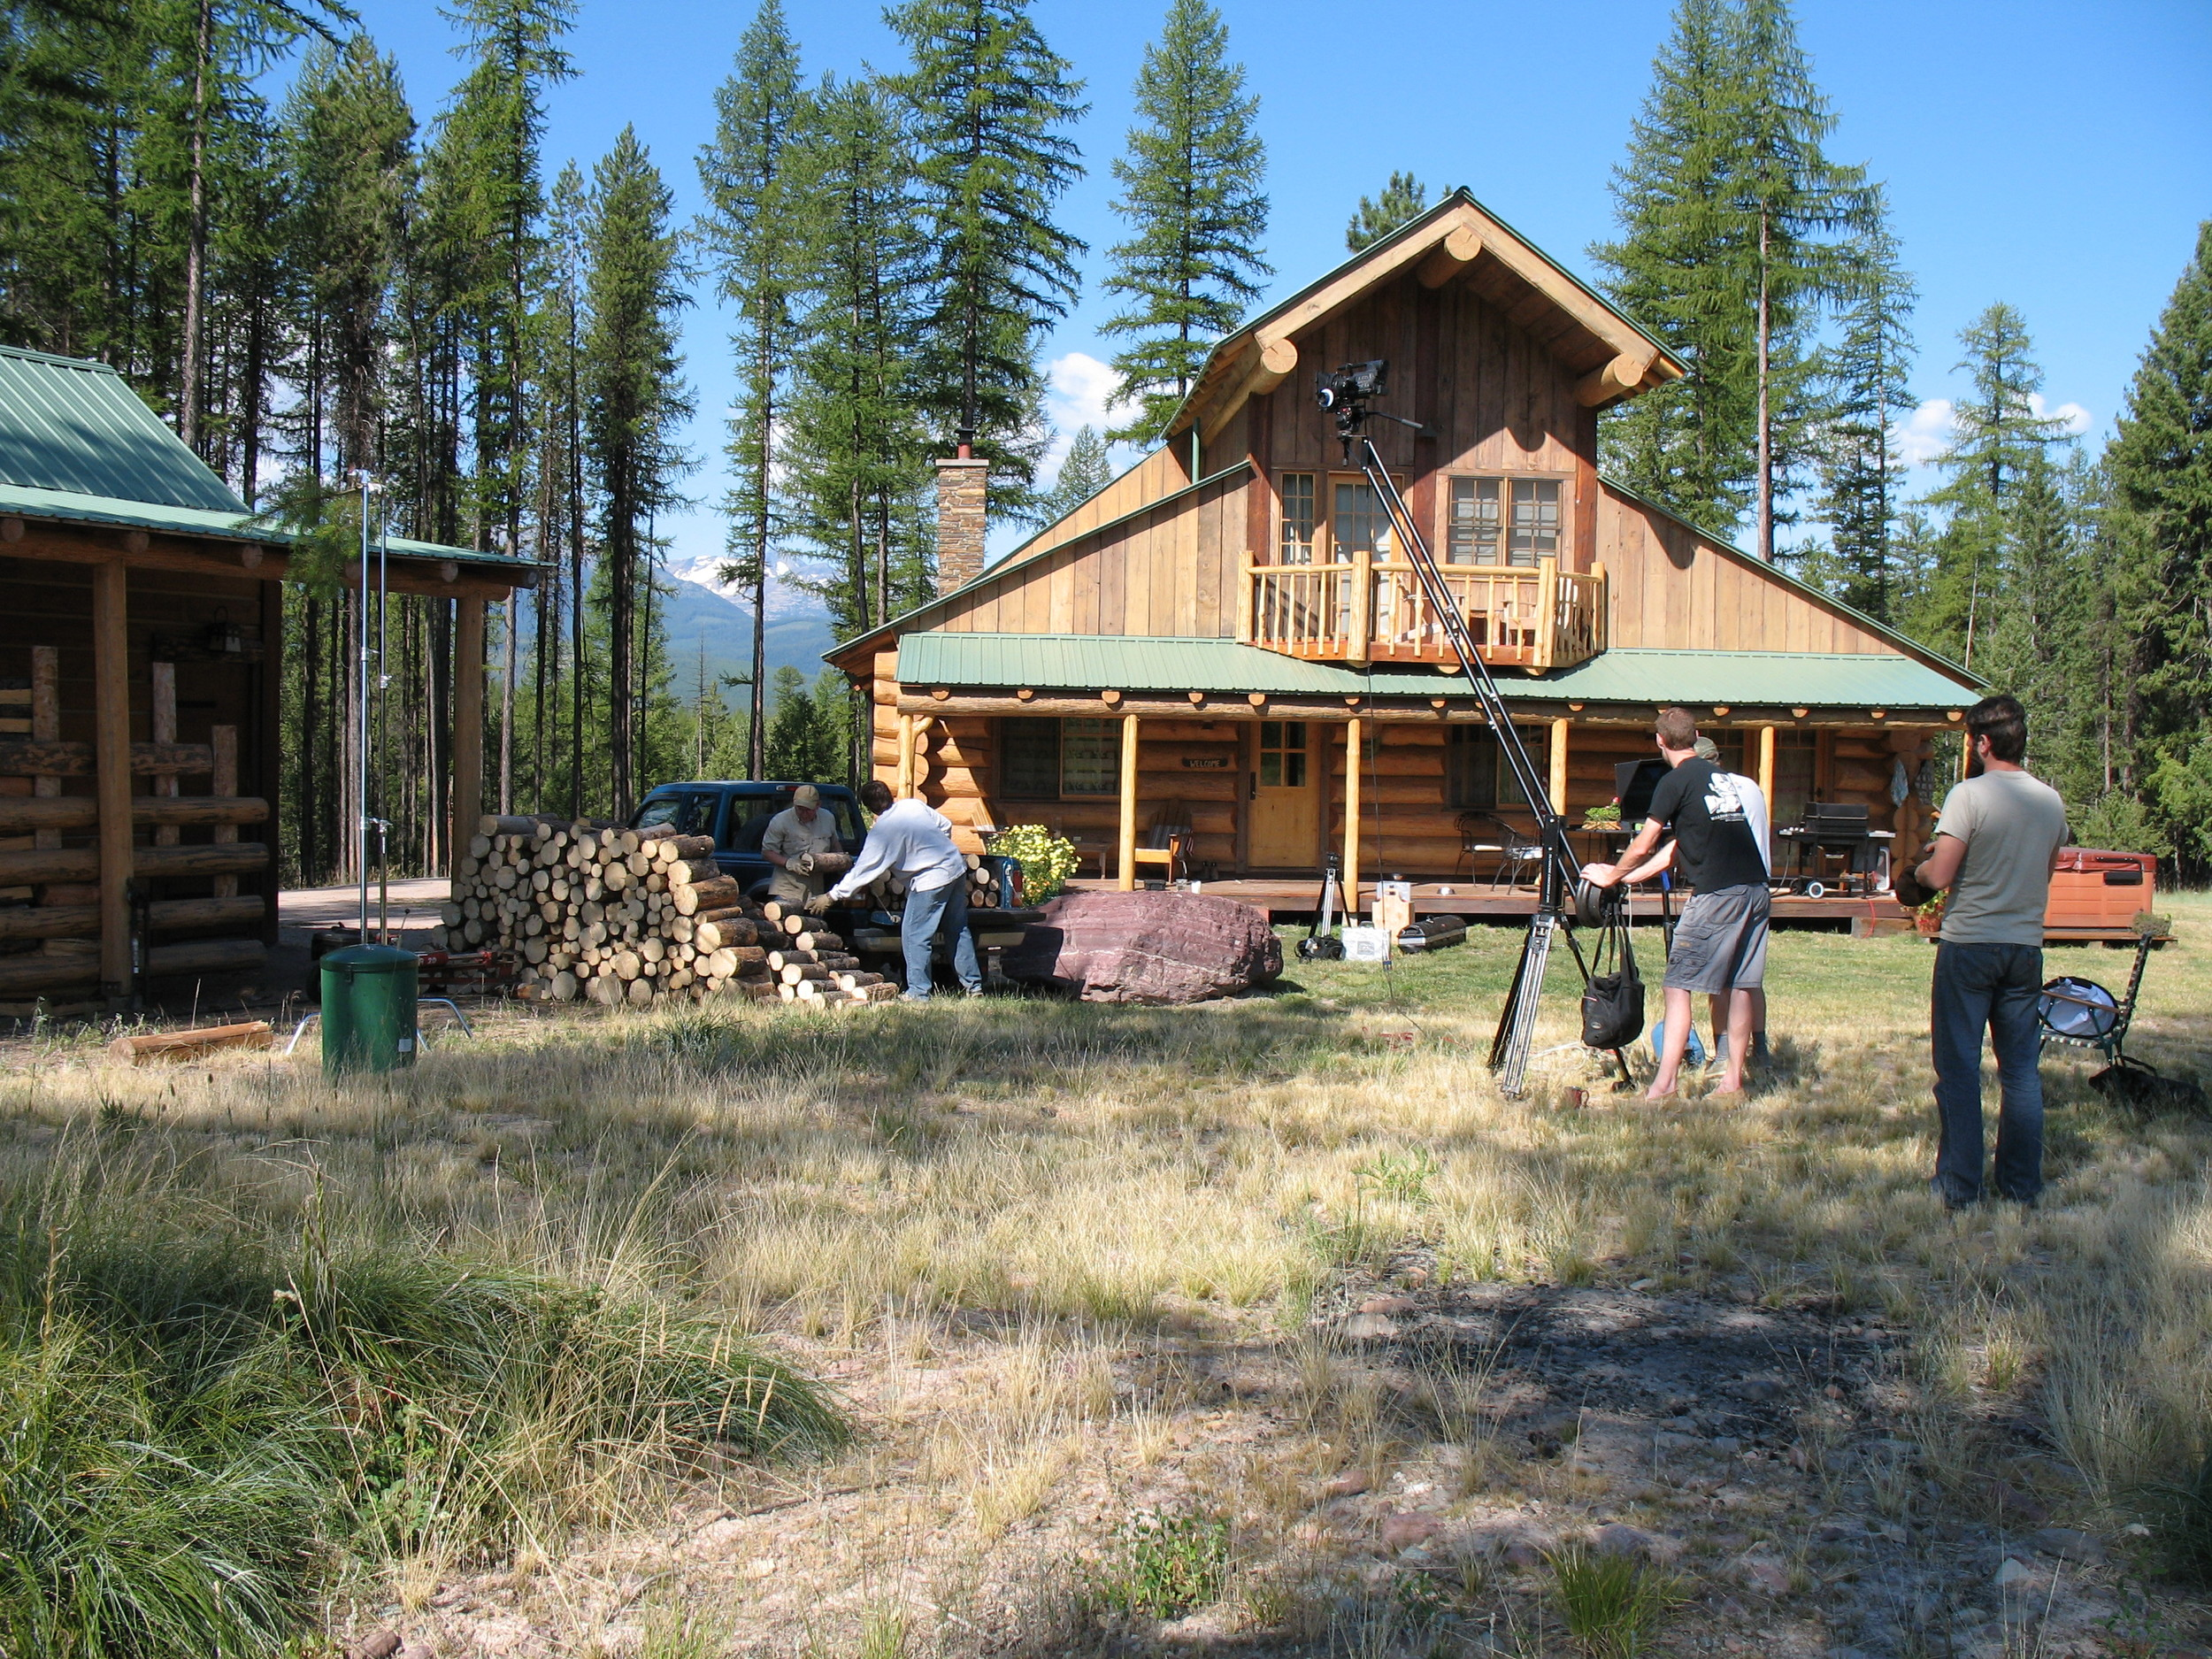 Burn-Wise Video Series in Production at Rohrer homestead